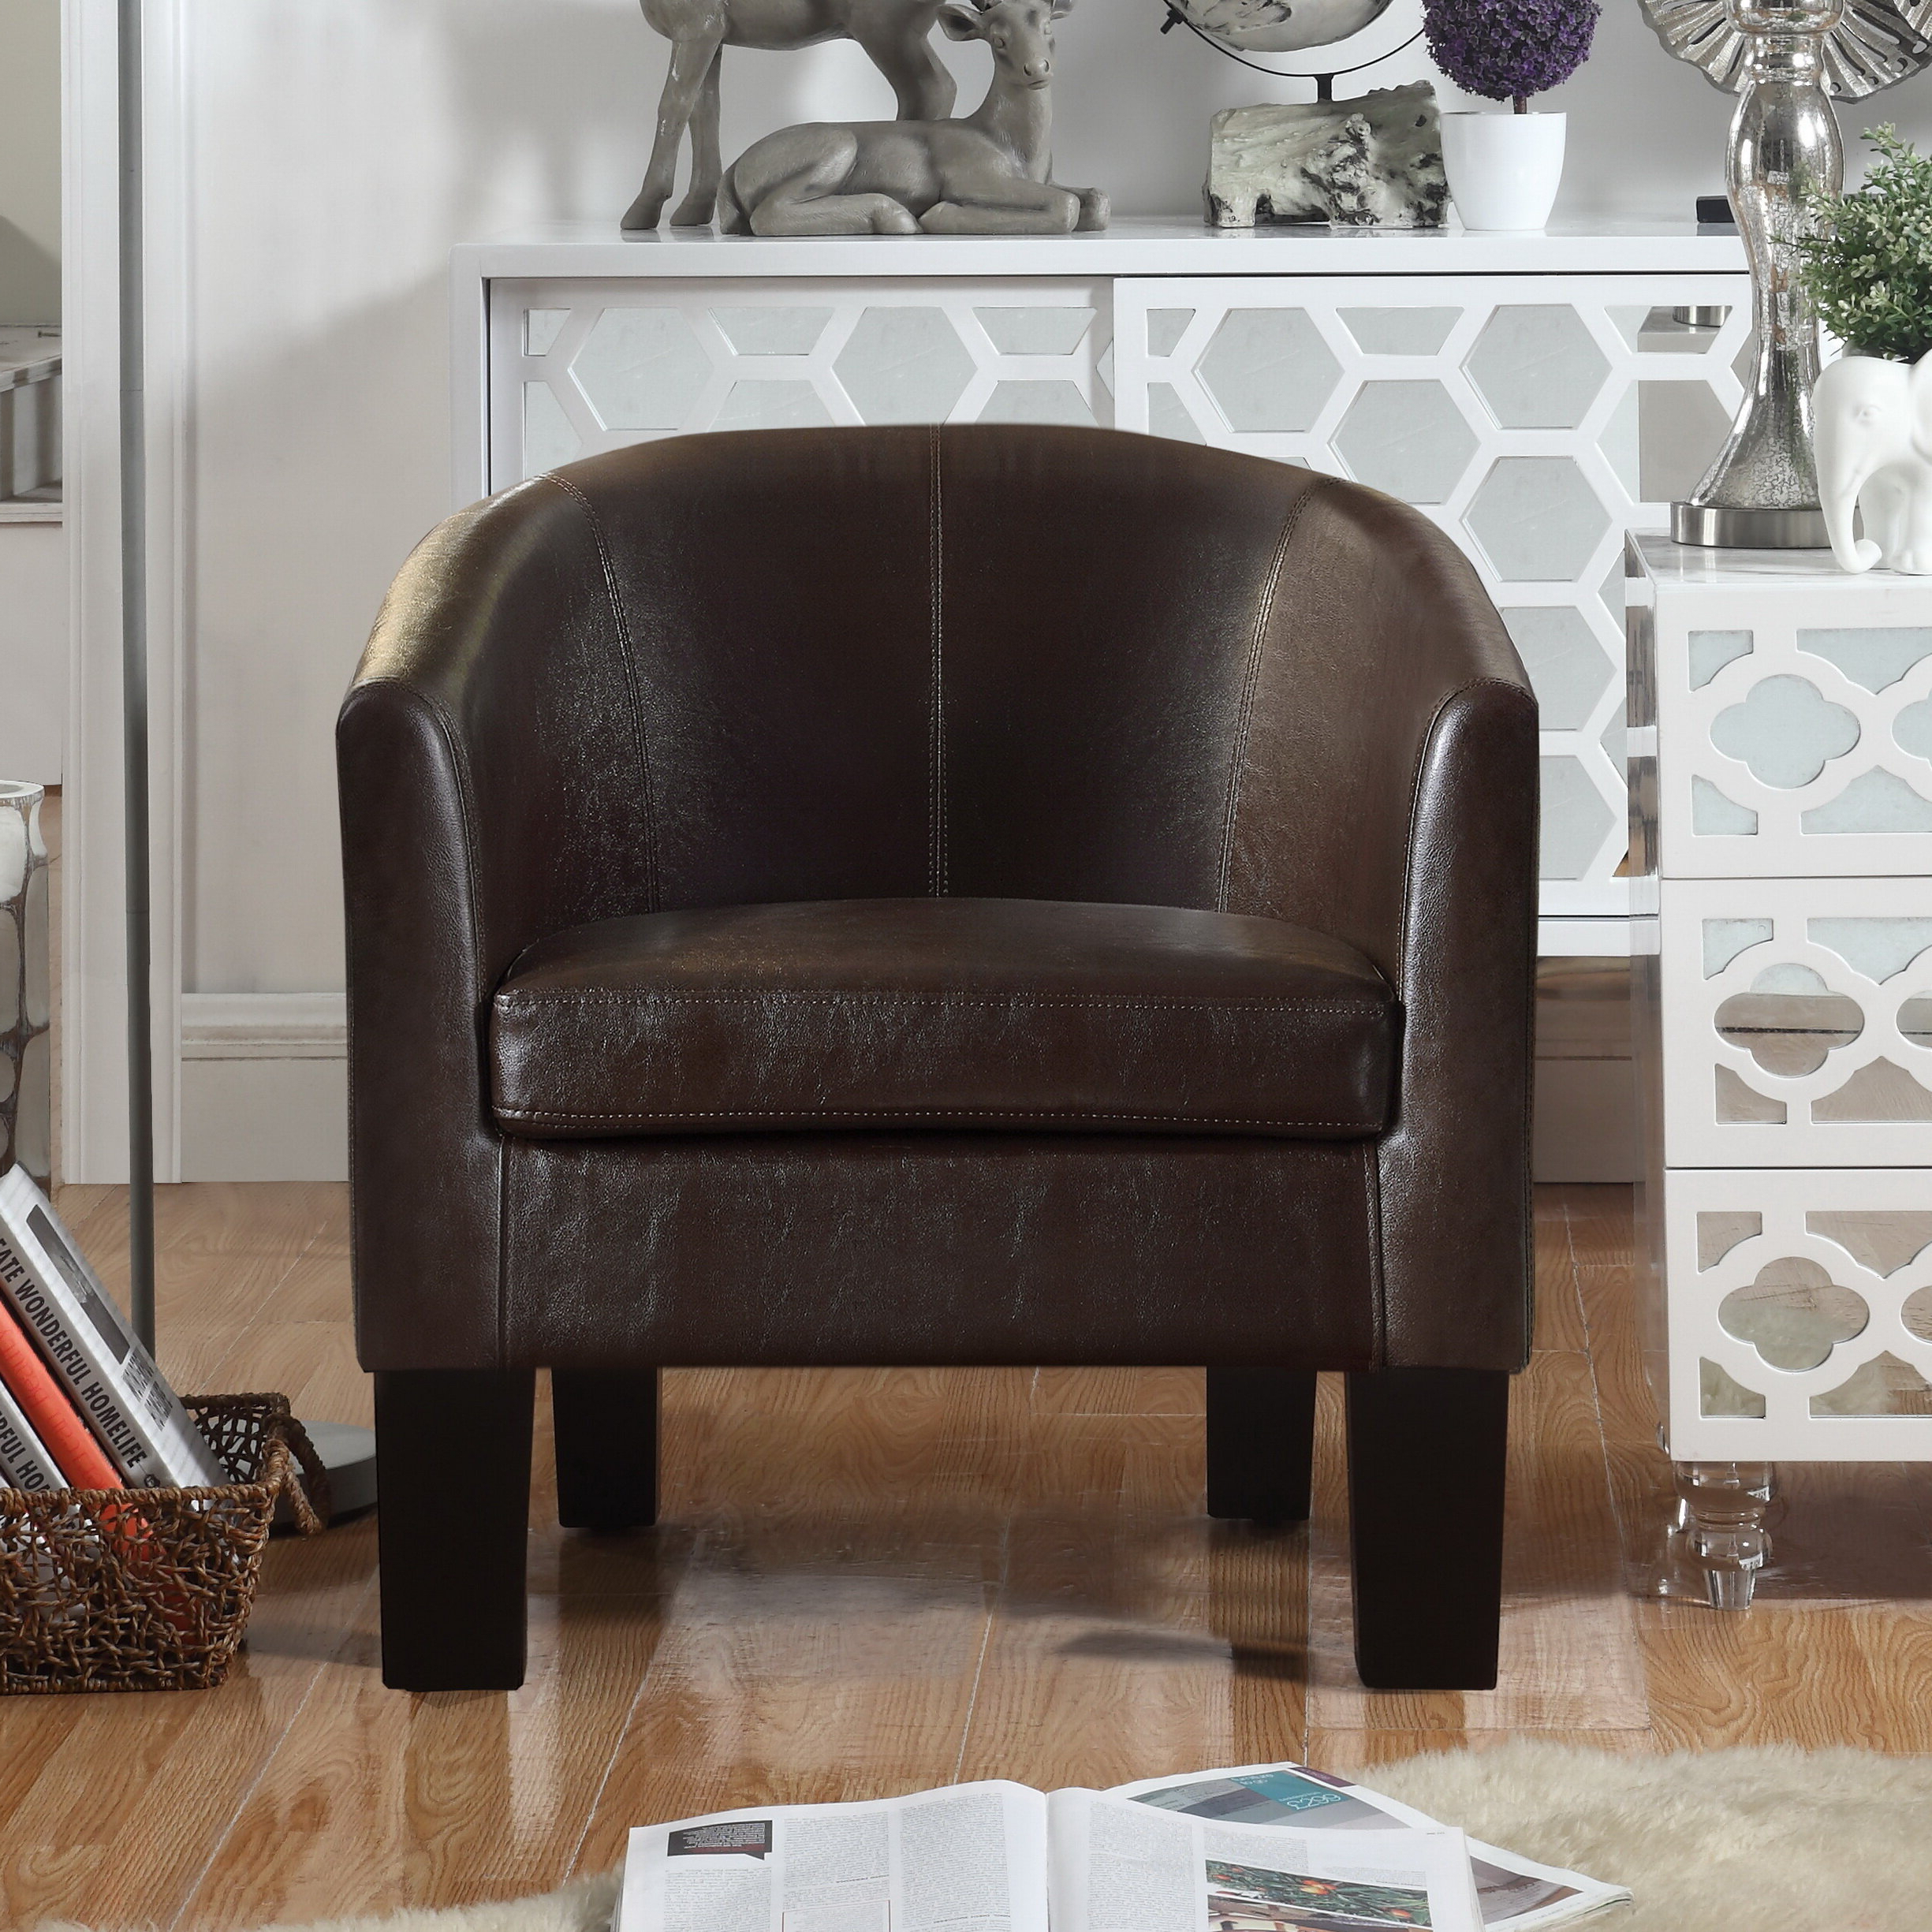 "Lucea Faux Leather Barrel Chairs And Ottoman Pertaining To 2020 Franky 26"" W Faux Leather Barrel Chair (View 4 of 20)"